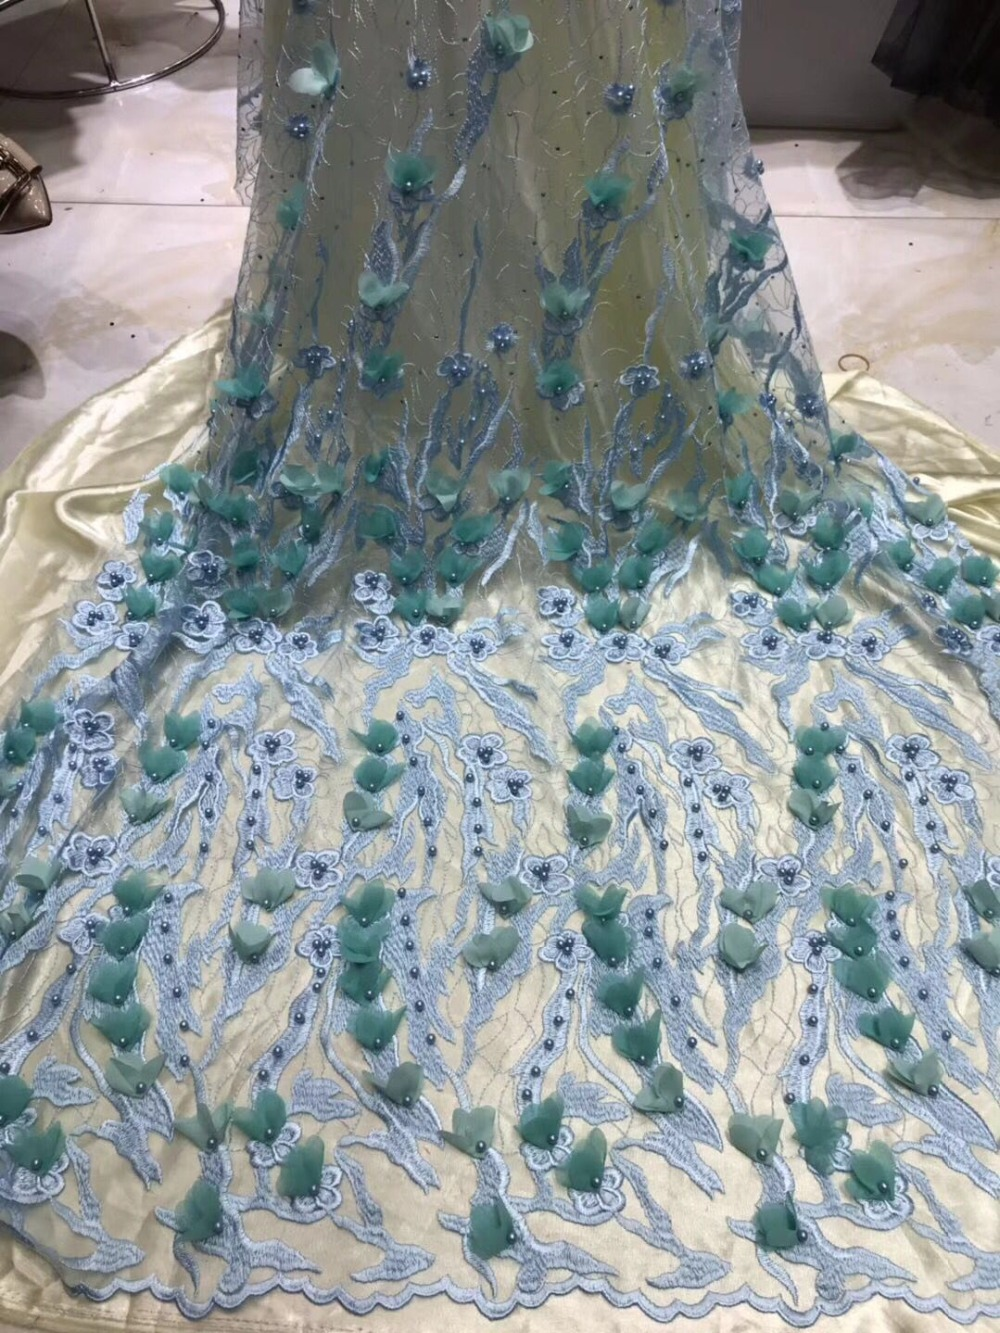 SKY BLUE Wedding Dress Lace Fabric 3D Green Flowers handcut Beads 2019 High quality luxury applique